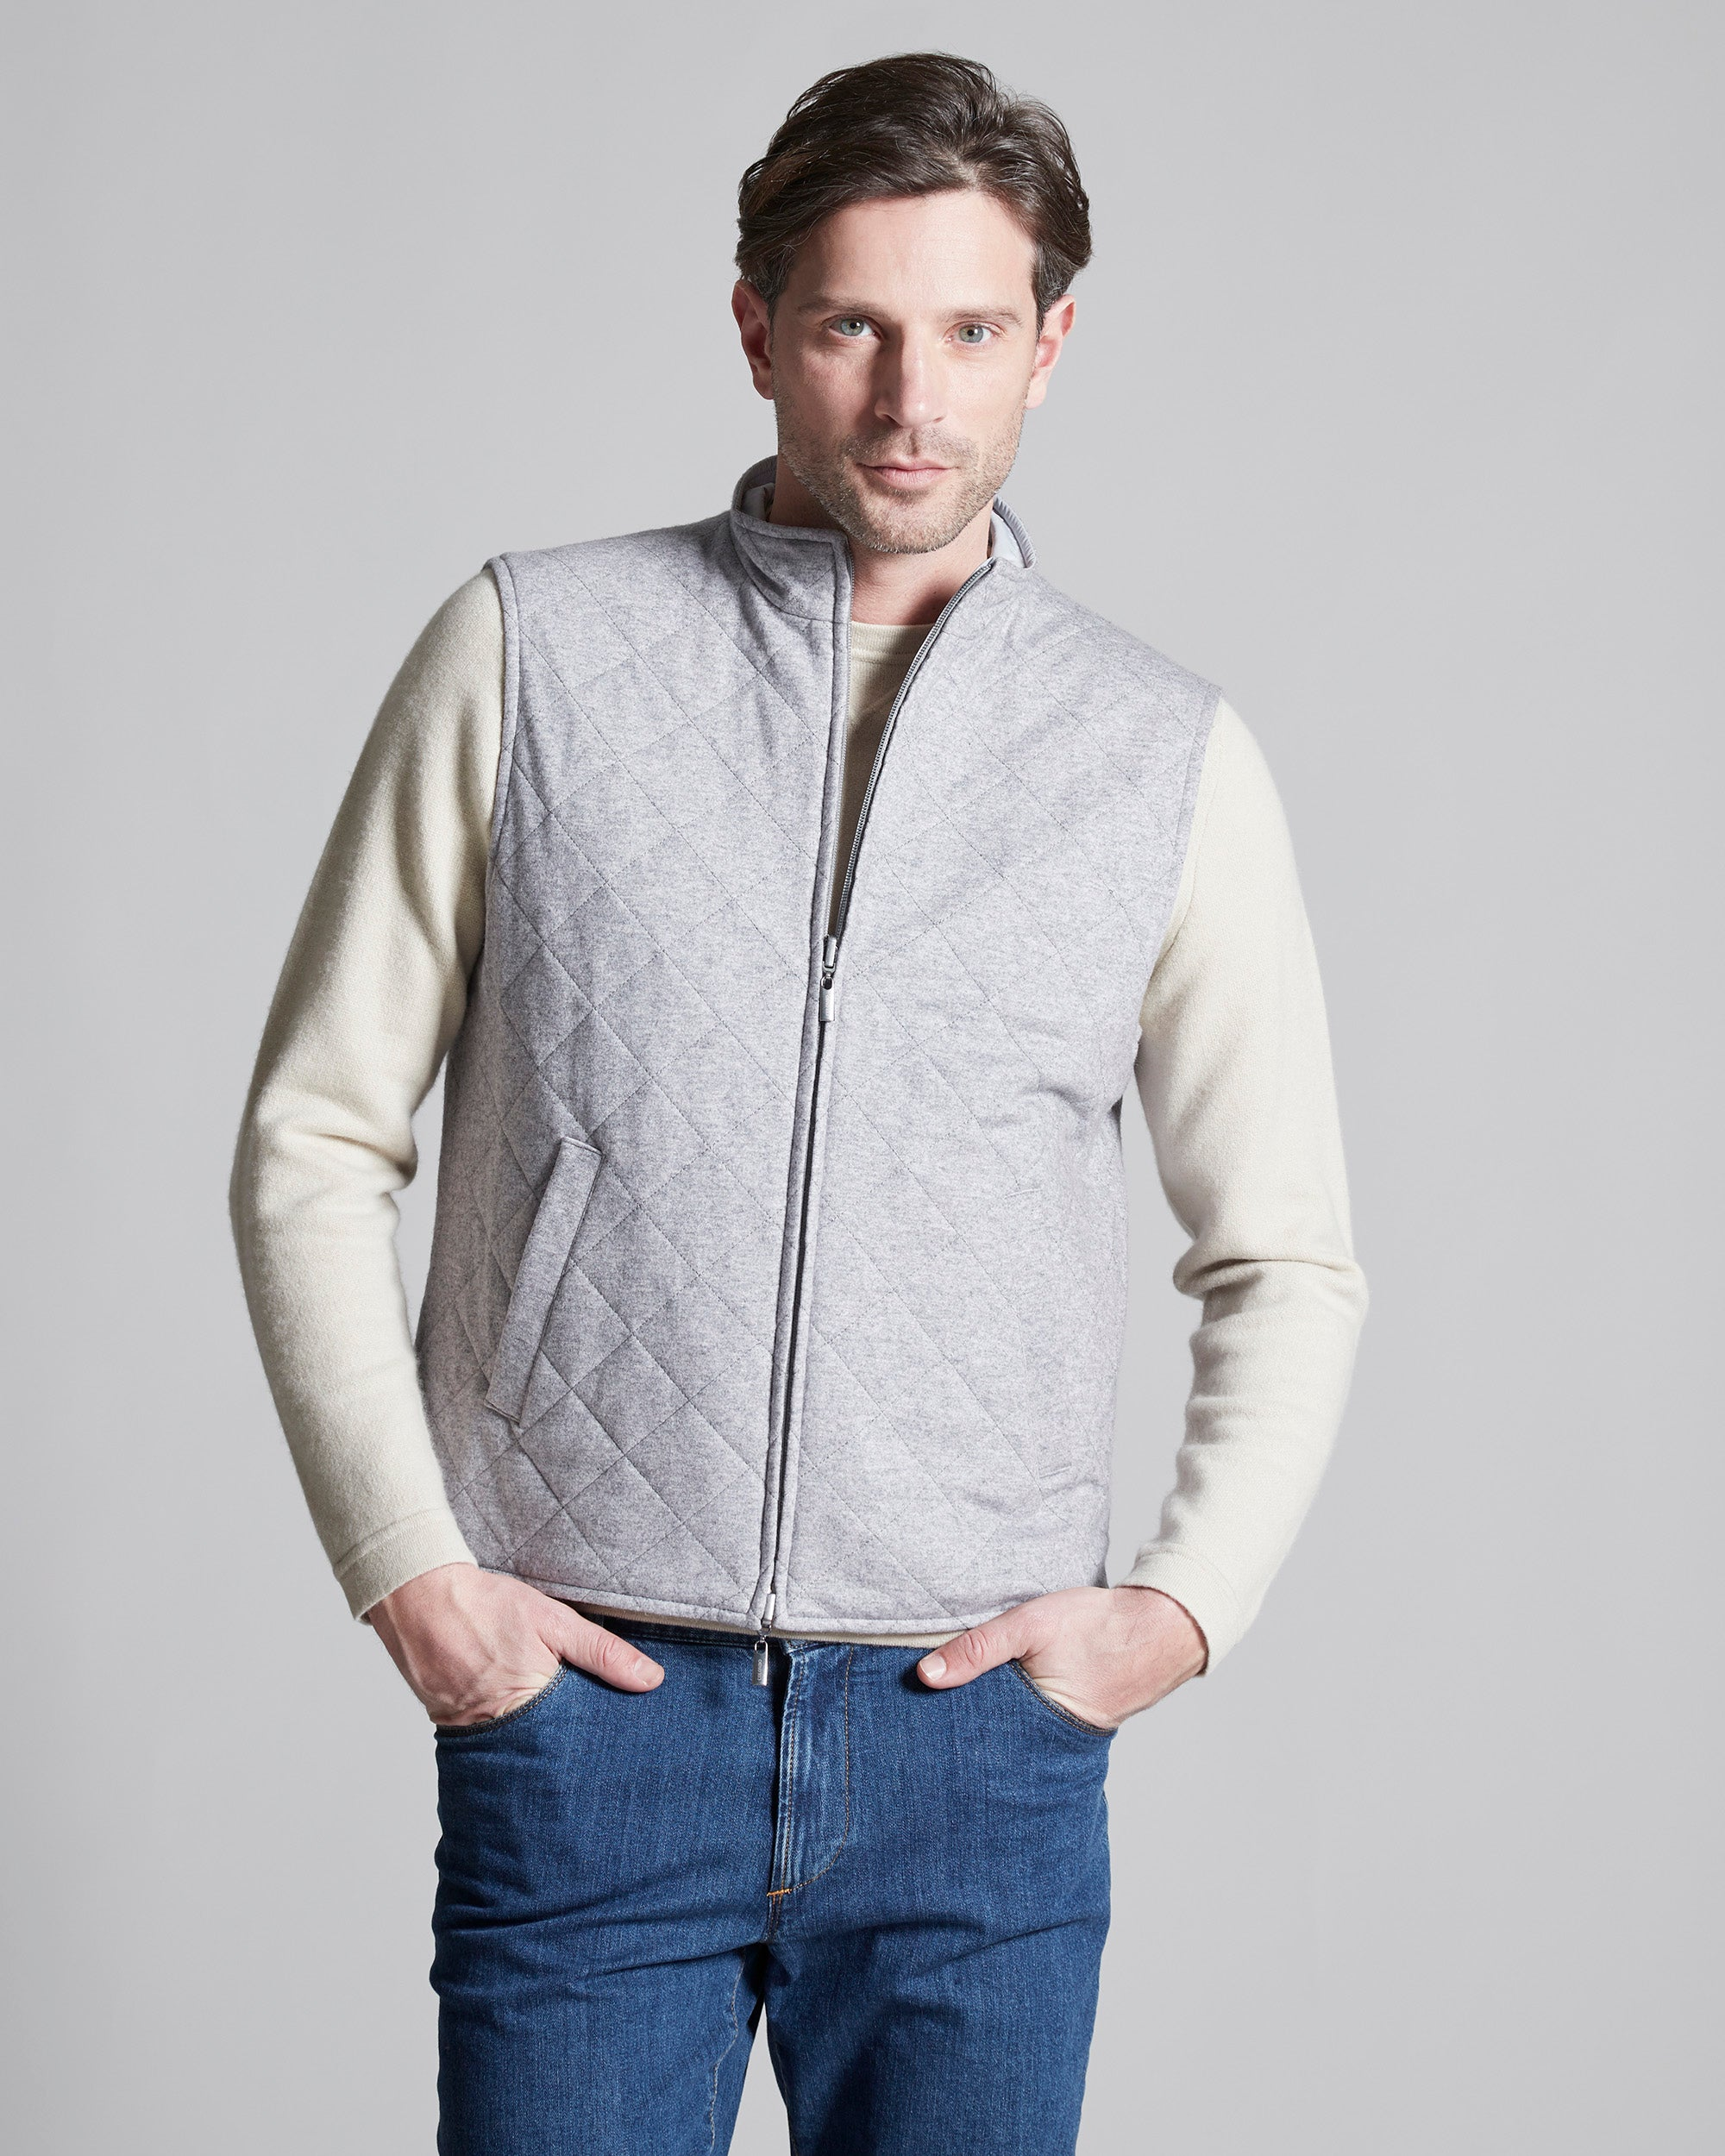 Mens Grey/Ice White men's reversible quilted cashmere vest